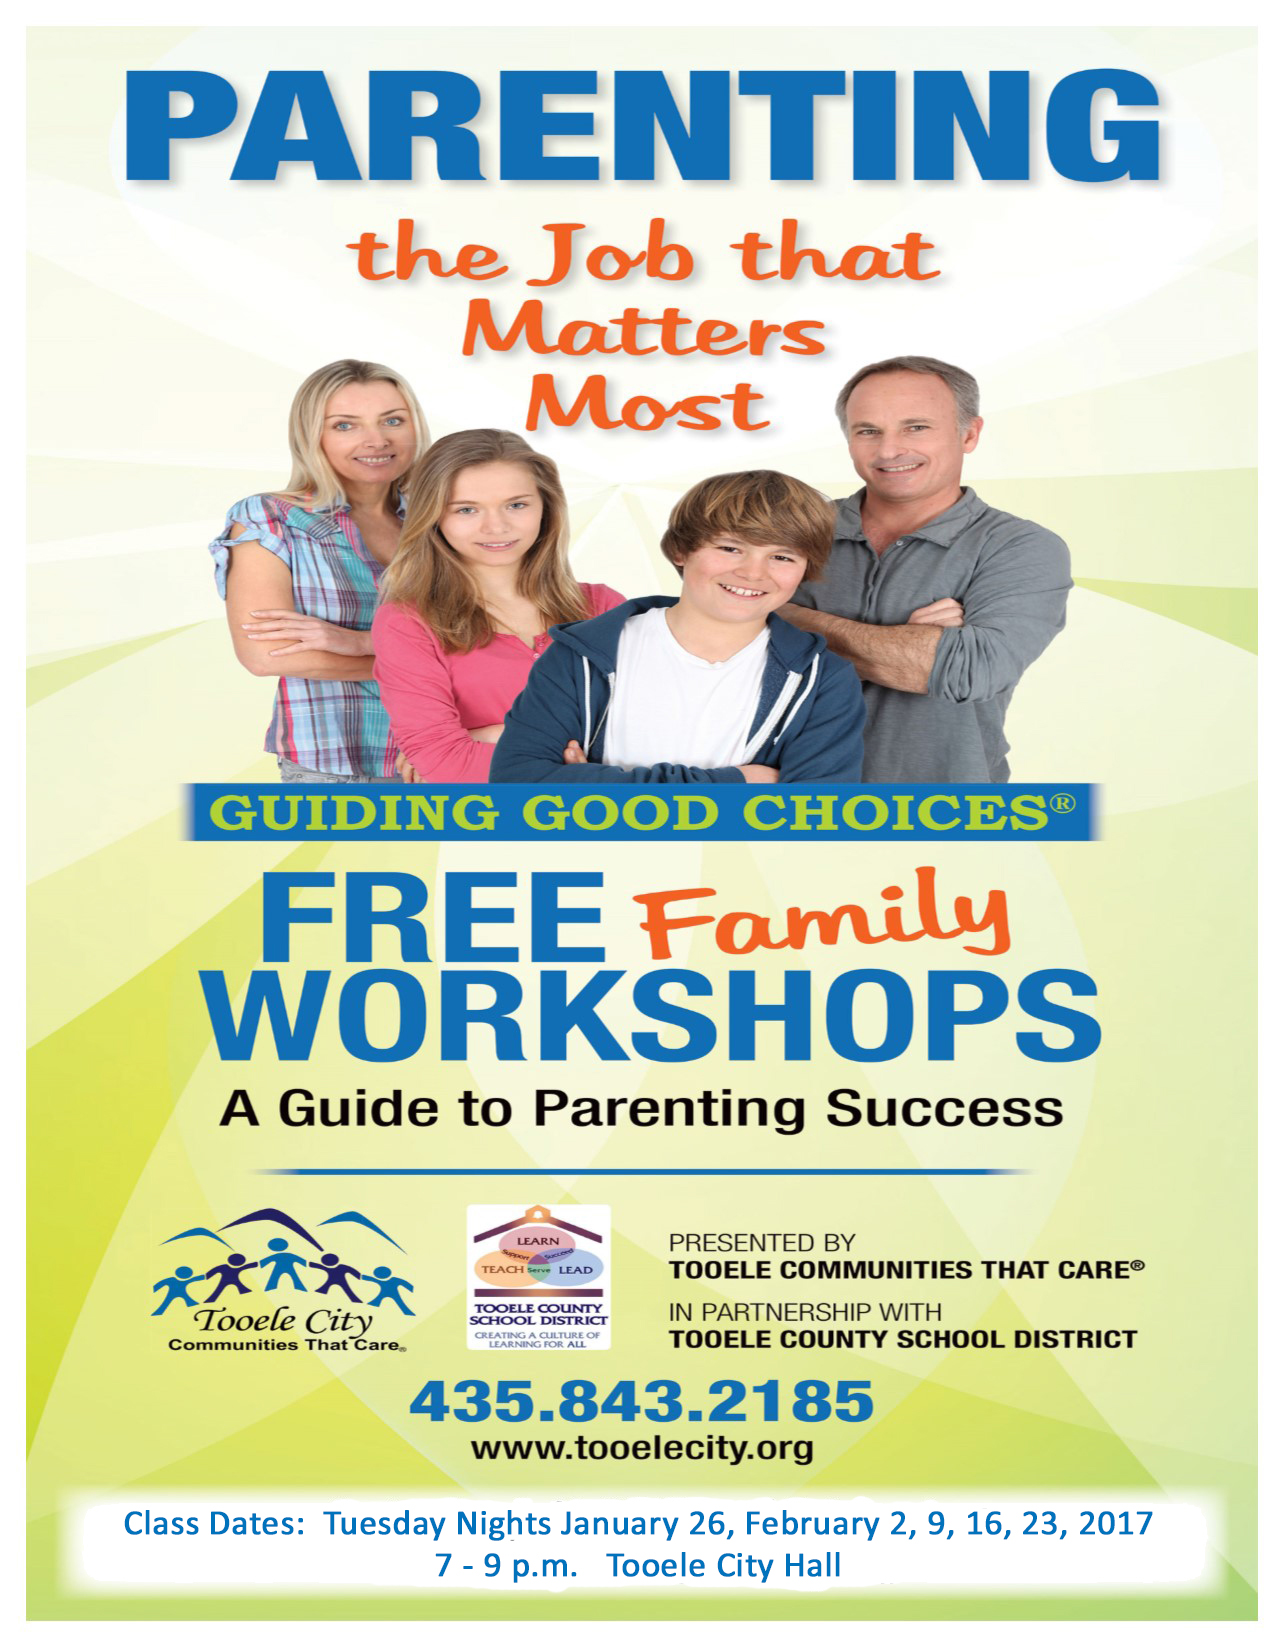 Guiding Good Choices FREE Parenting & Family Workshops (Thursday Nights) @ Tooele City Hall   Tooele   Utah   United States